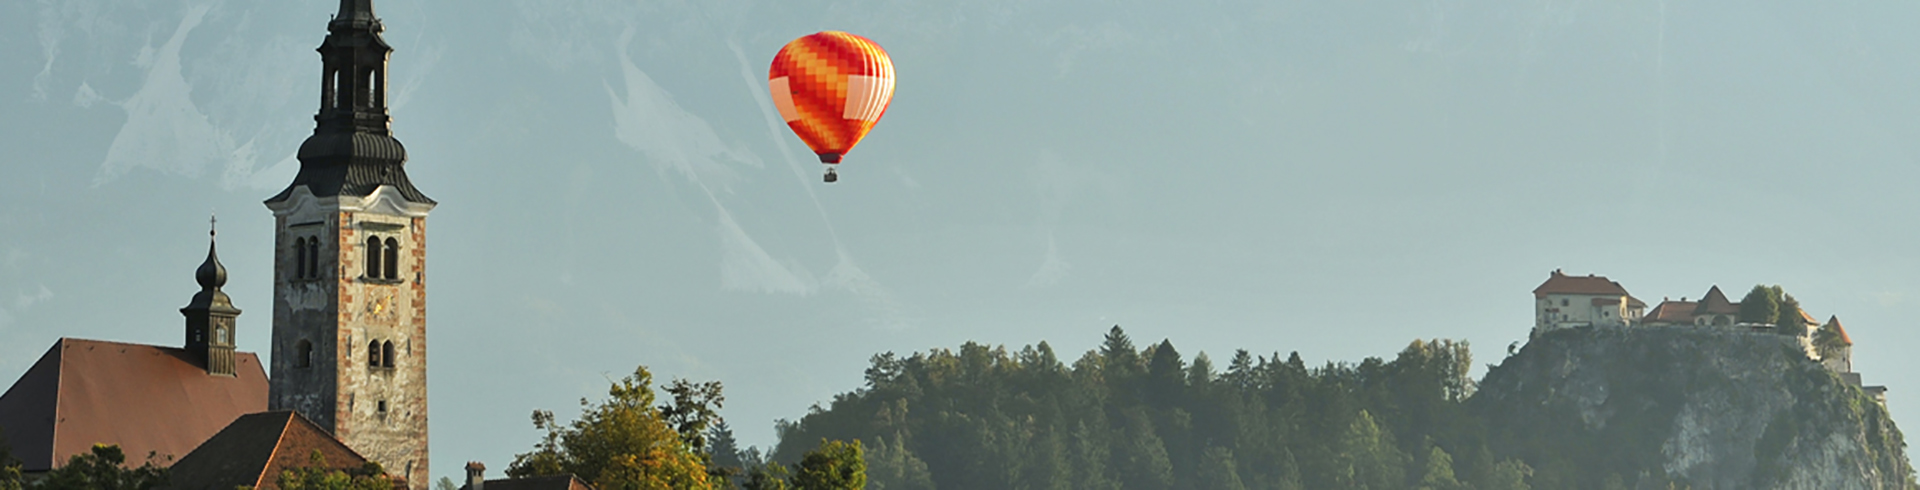 Hot air ballooning over Lake Bled and castle